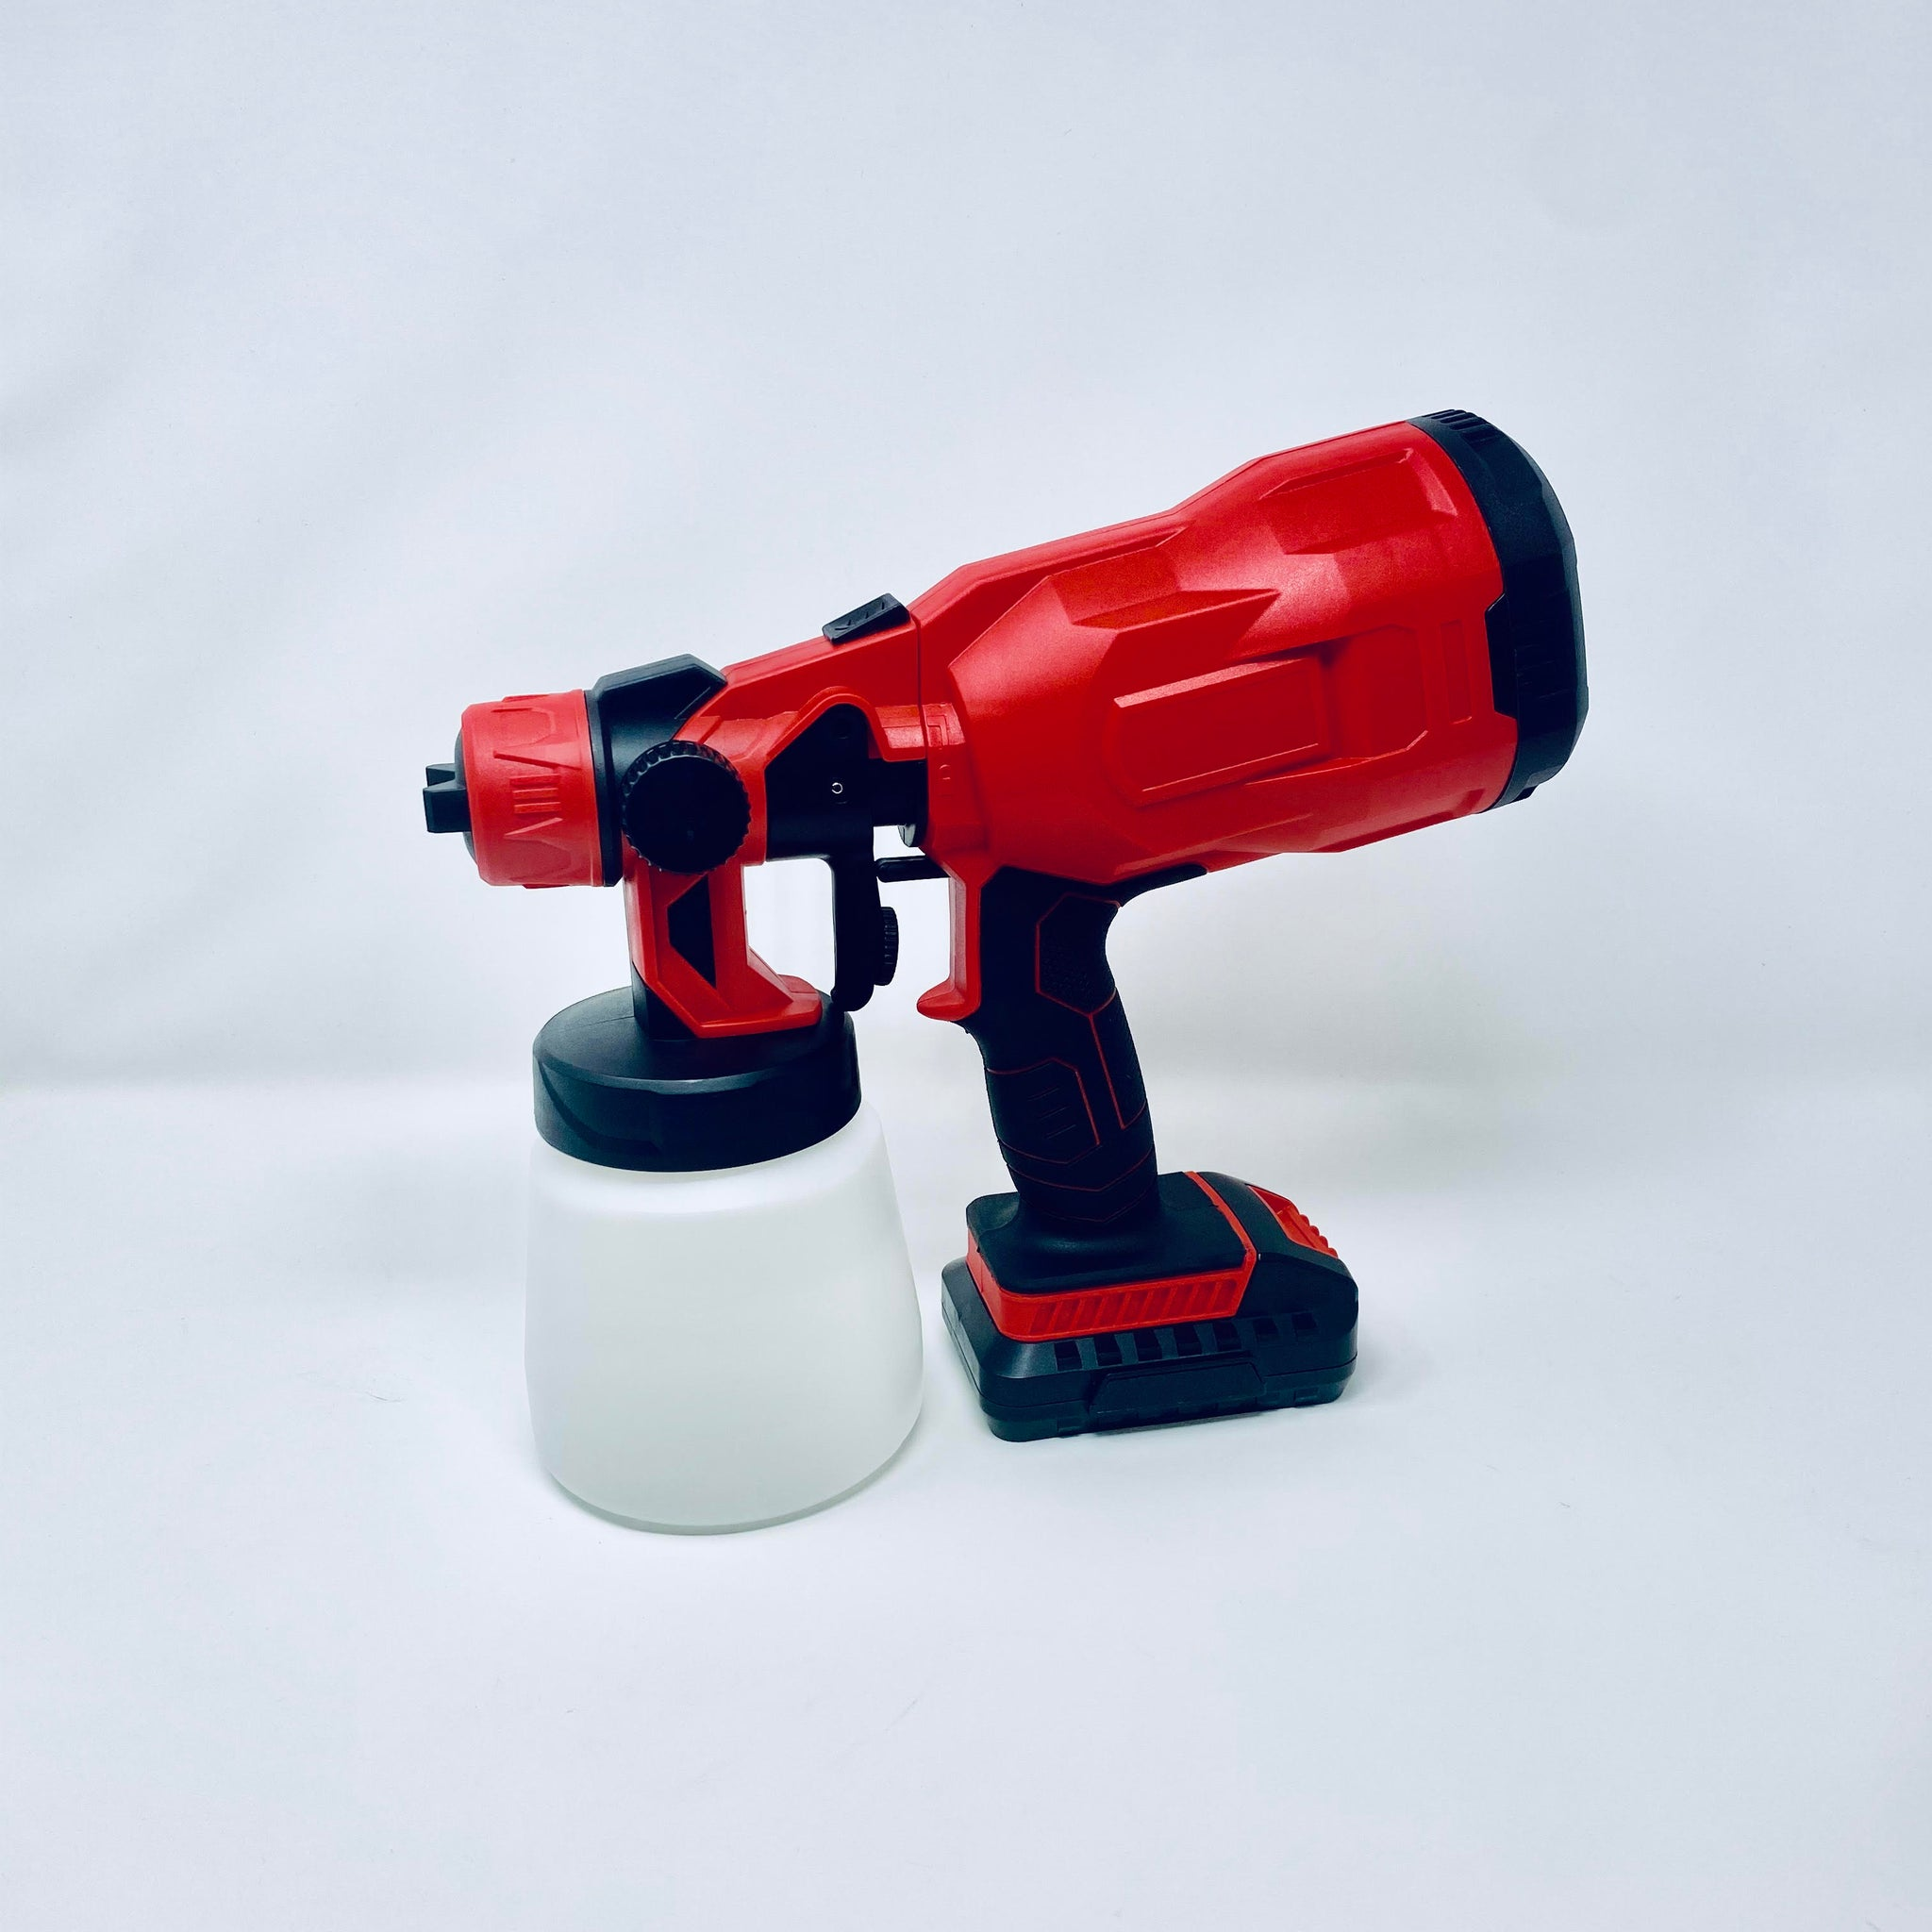 18 Volt Hand Held Sanitizer Spray Gun